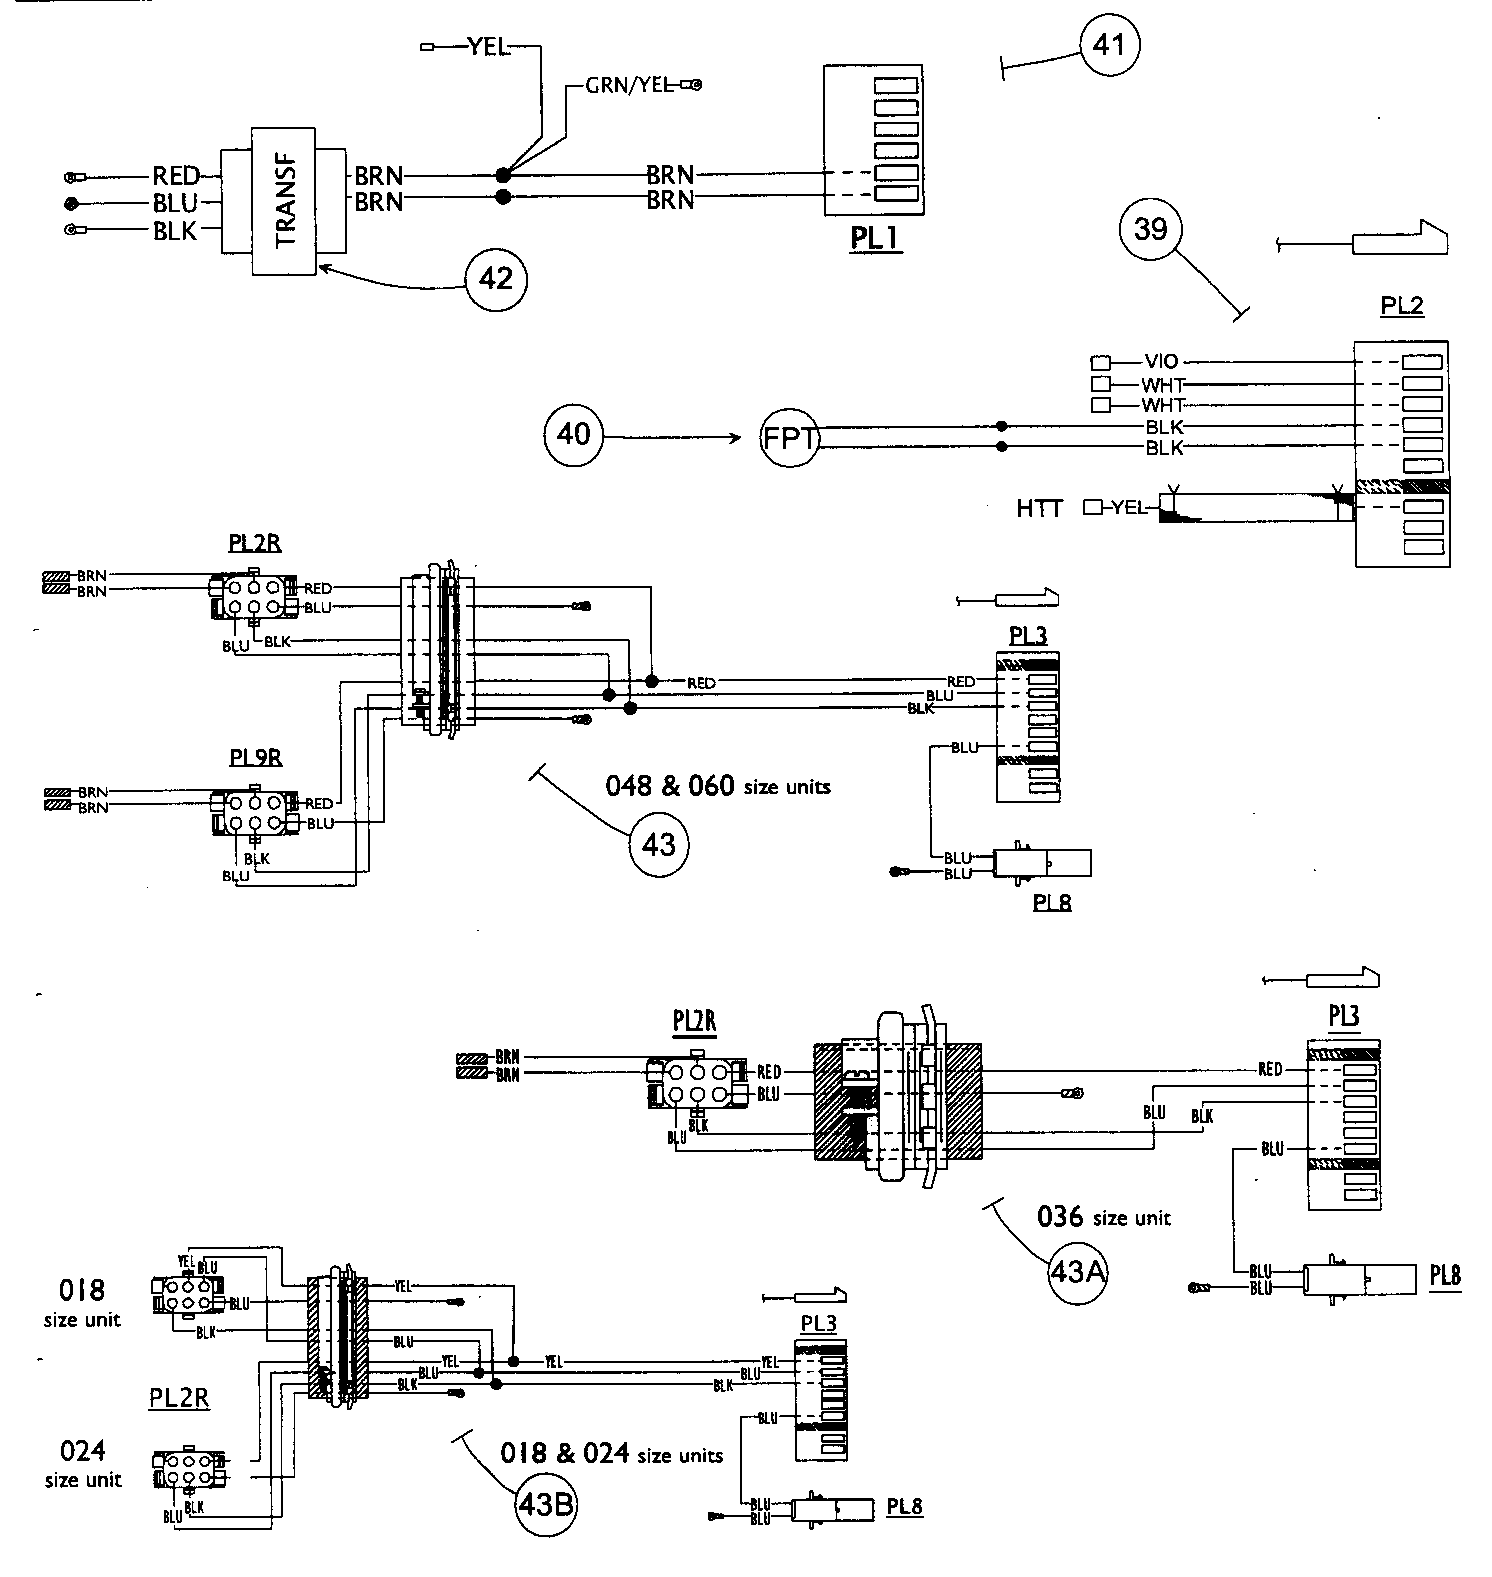 Bard Hvac Wiring Diagrams On Bard Download For Wiring Diagrams